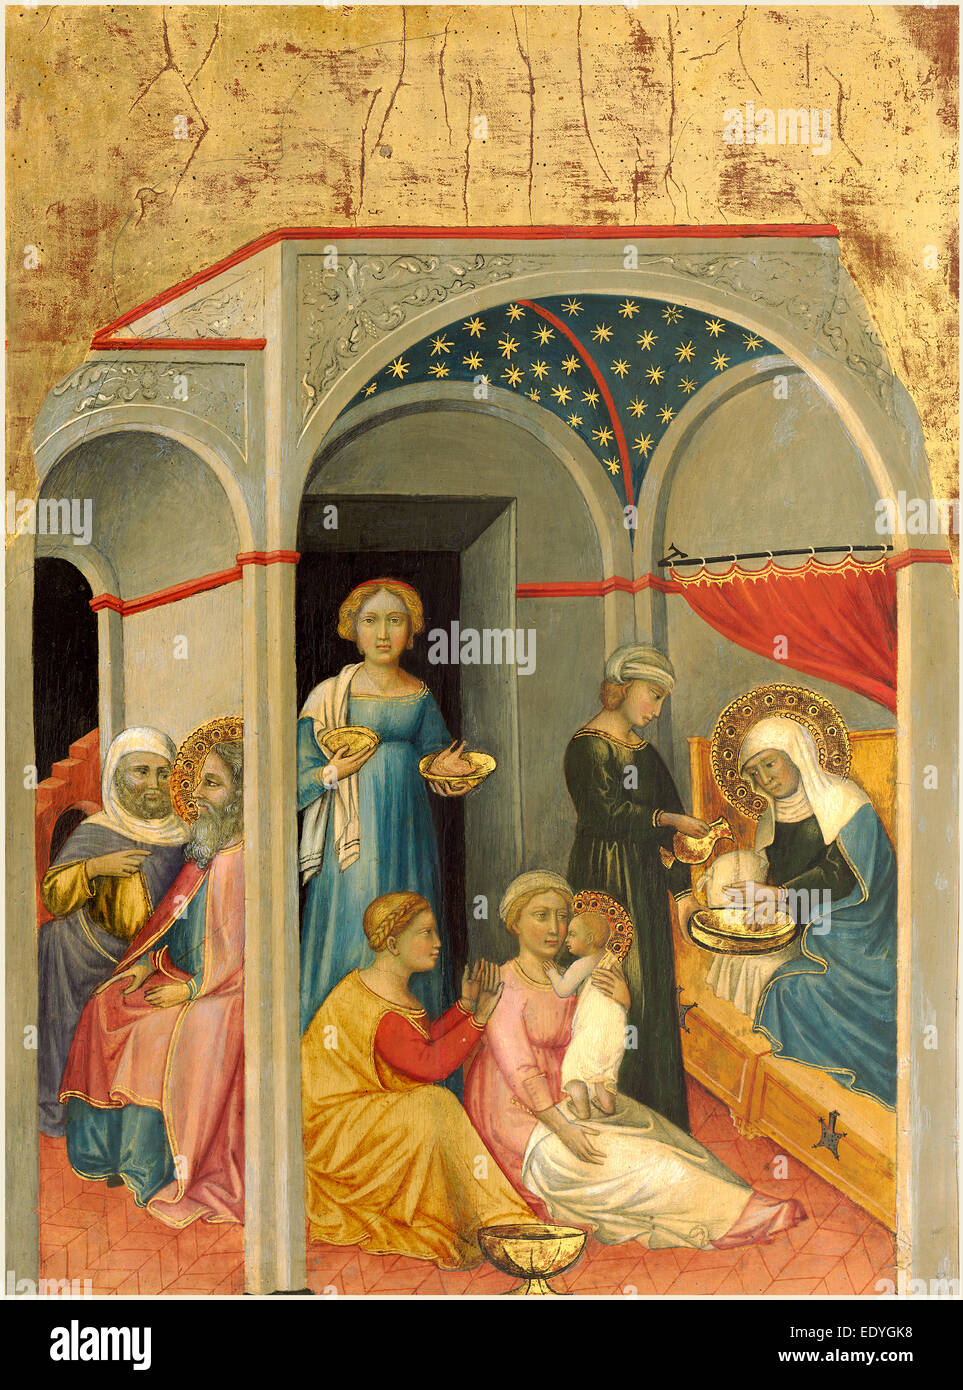 Andrea di Bartolo, Italian (documented from 1389-died 1428), The Nativity of the Virgin, c. 1400, tempera on panel - Stock Image